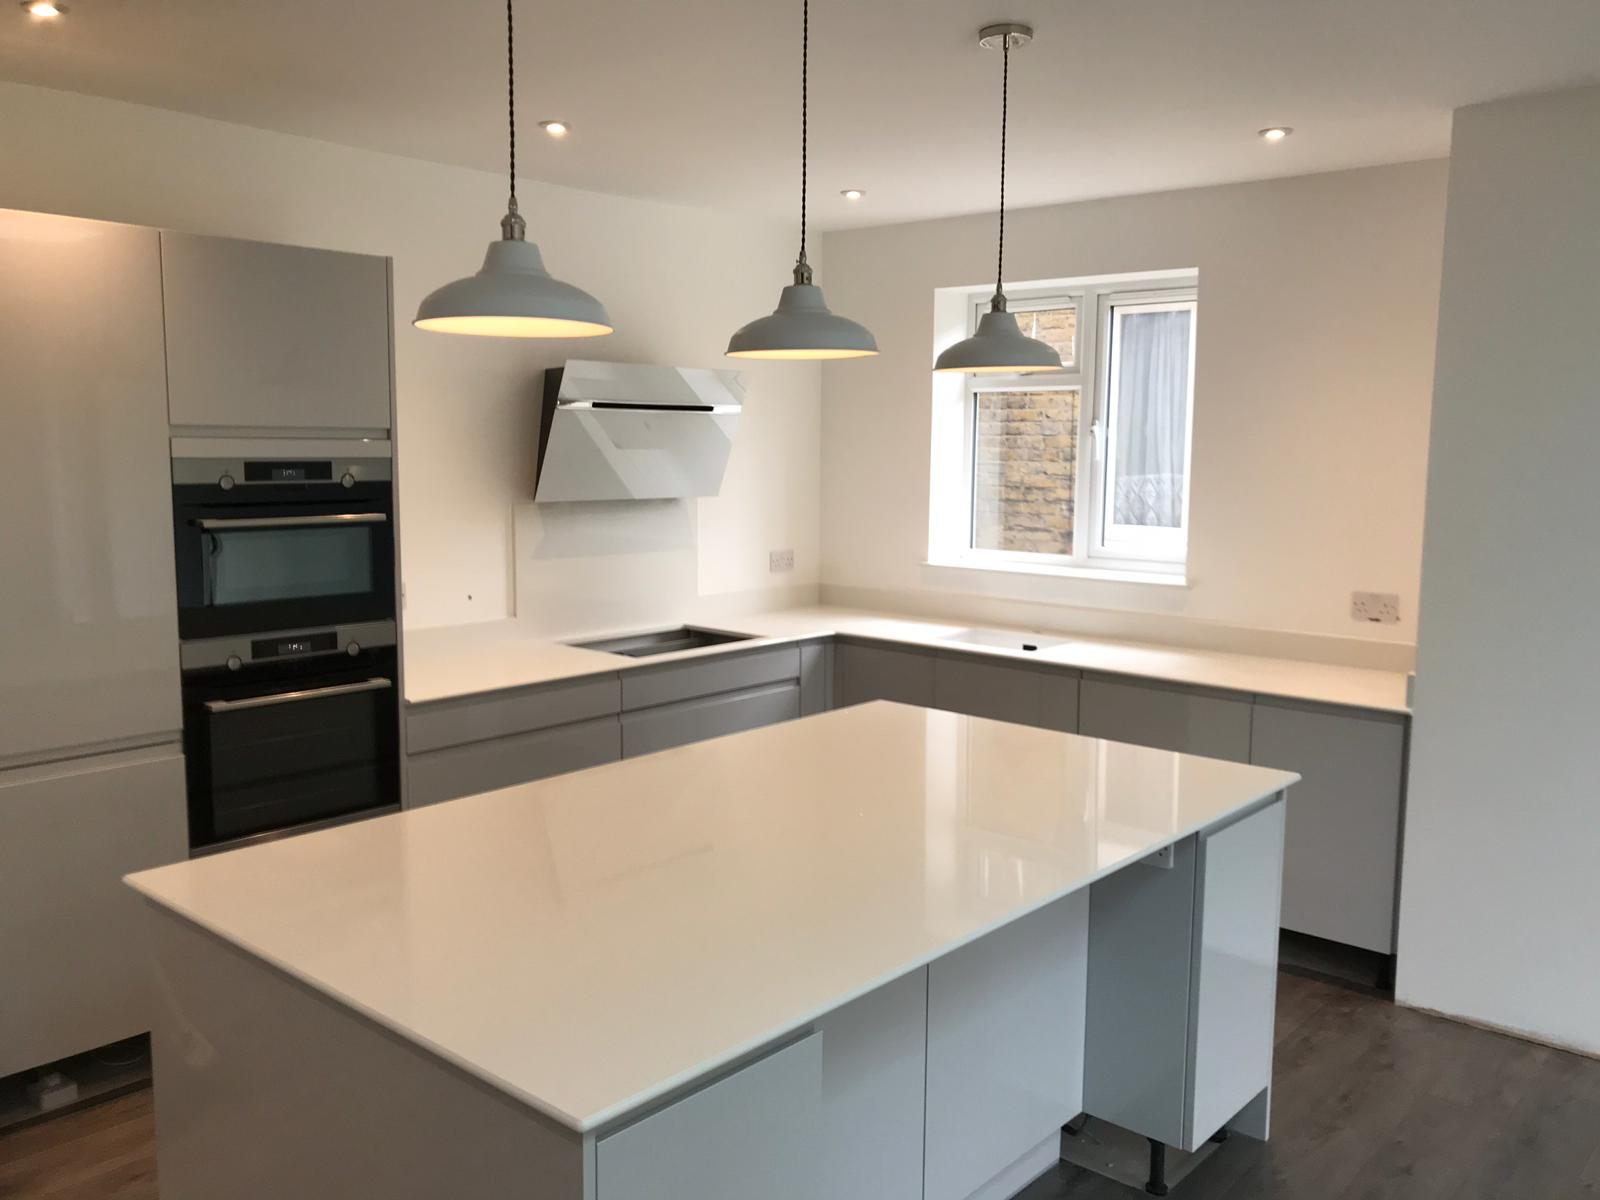 Kitchen of the week… Located in Gillingham, Kent, showcasing the Aspen De Lusso